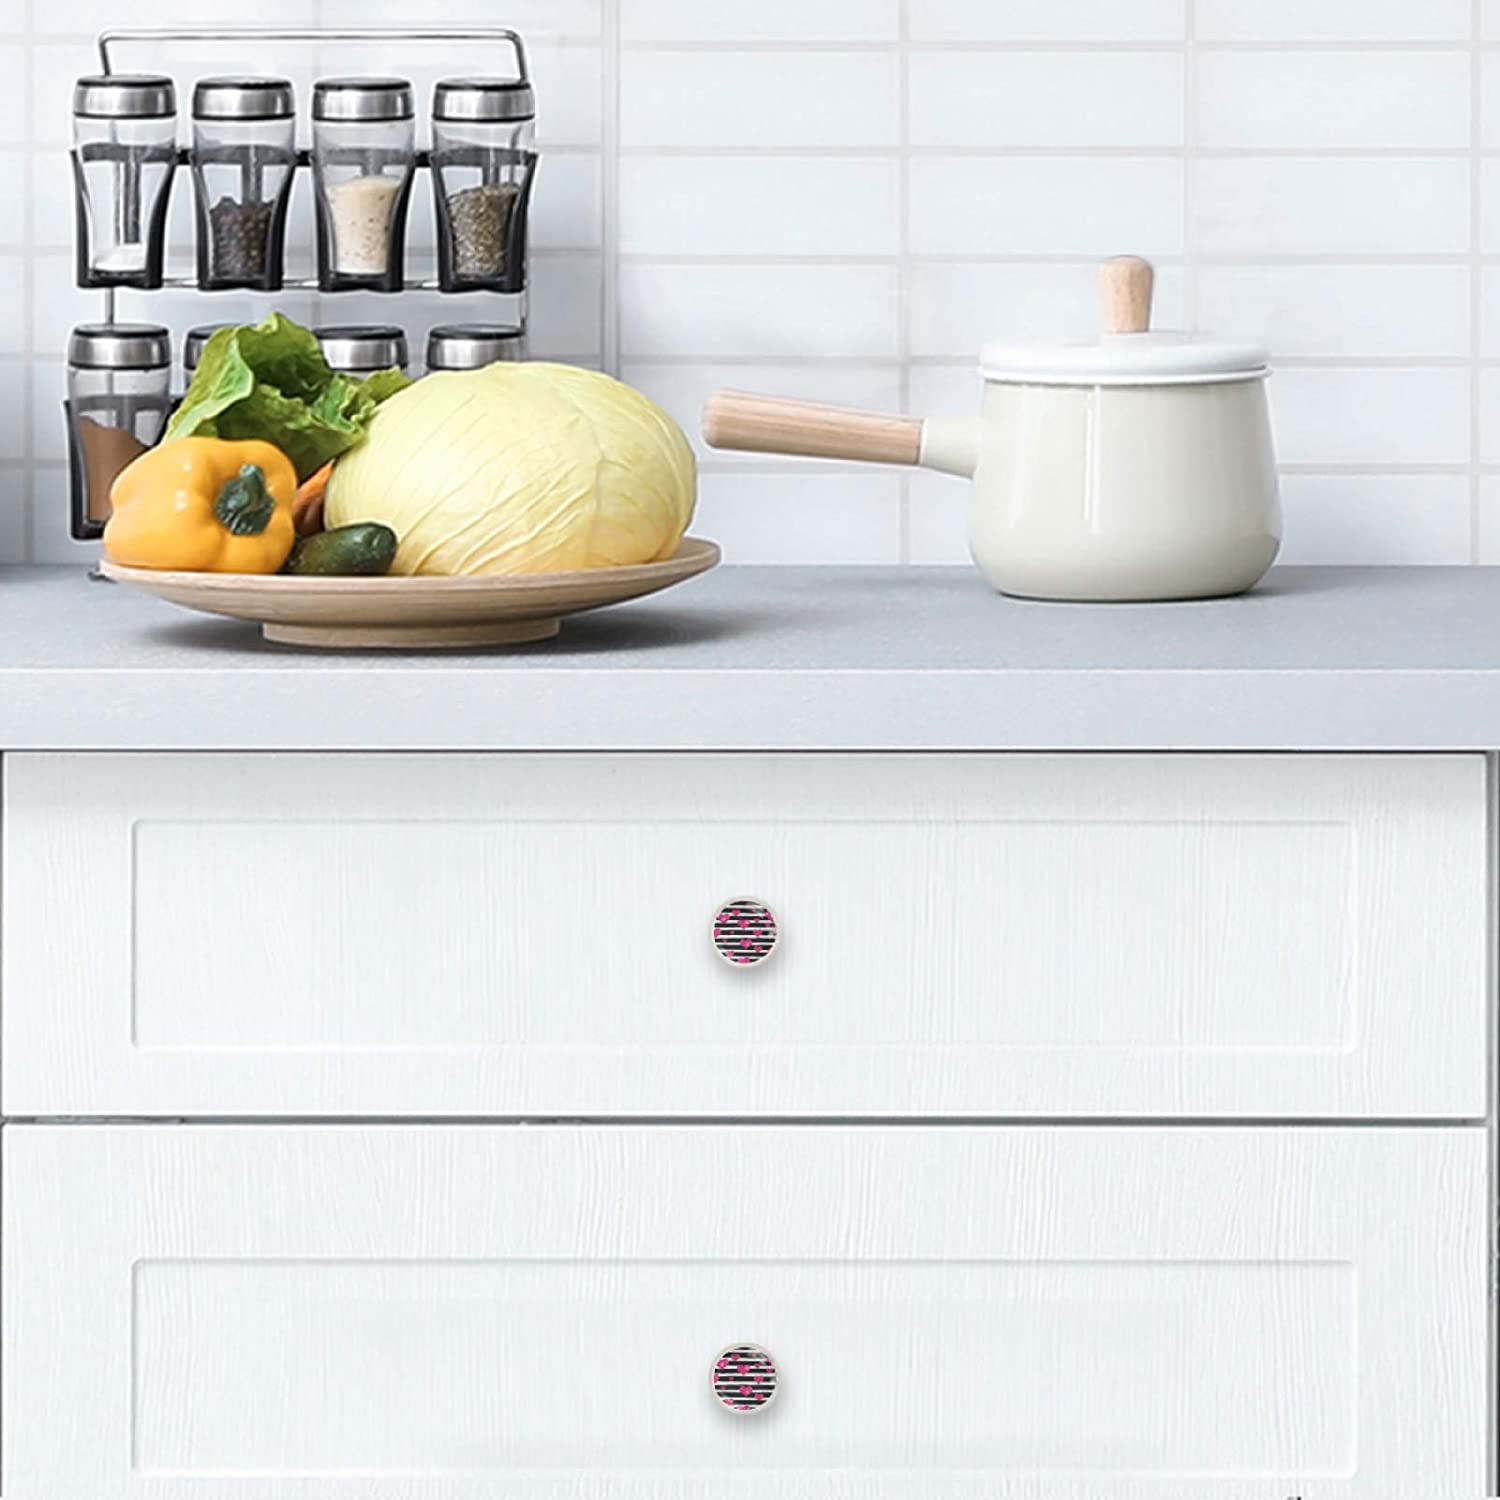 4 Cabinet Knobs for Dresser Drawers Cabinet Handles Pulls for Home Office Cupboard Pattern for Valentines Day with Black Hand Drawn Lines and Hearts